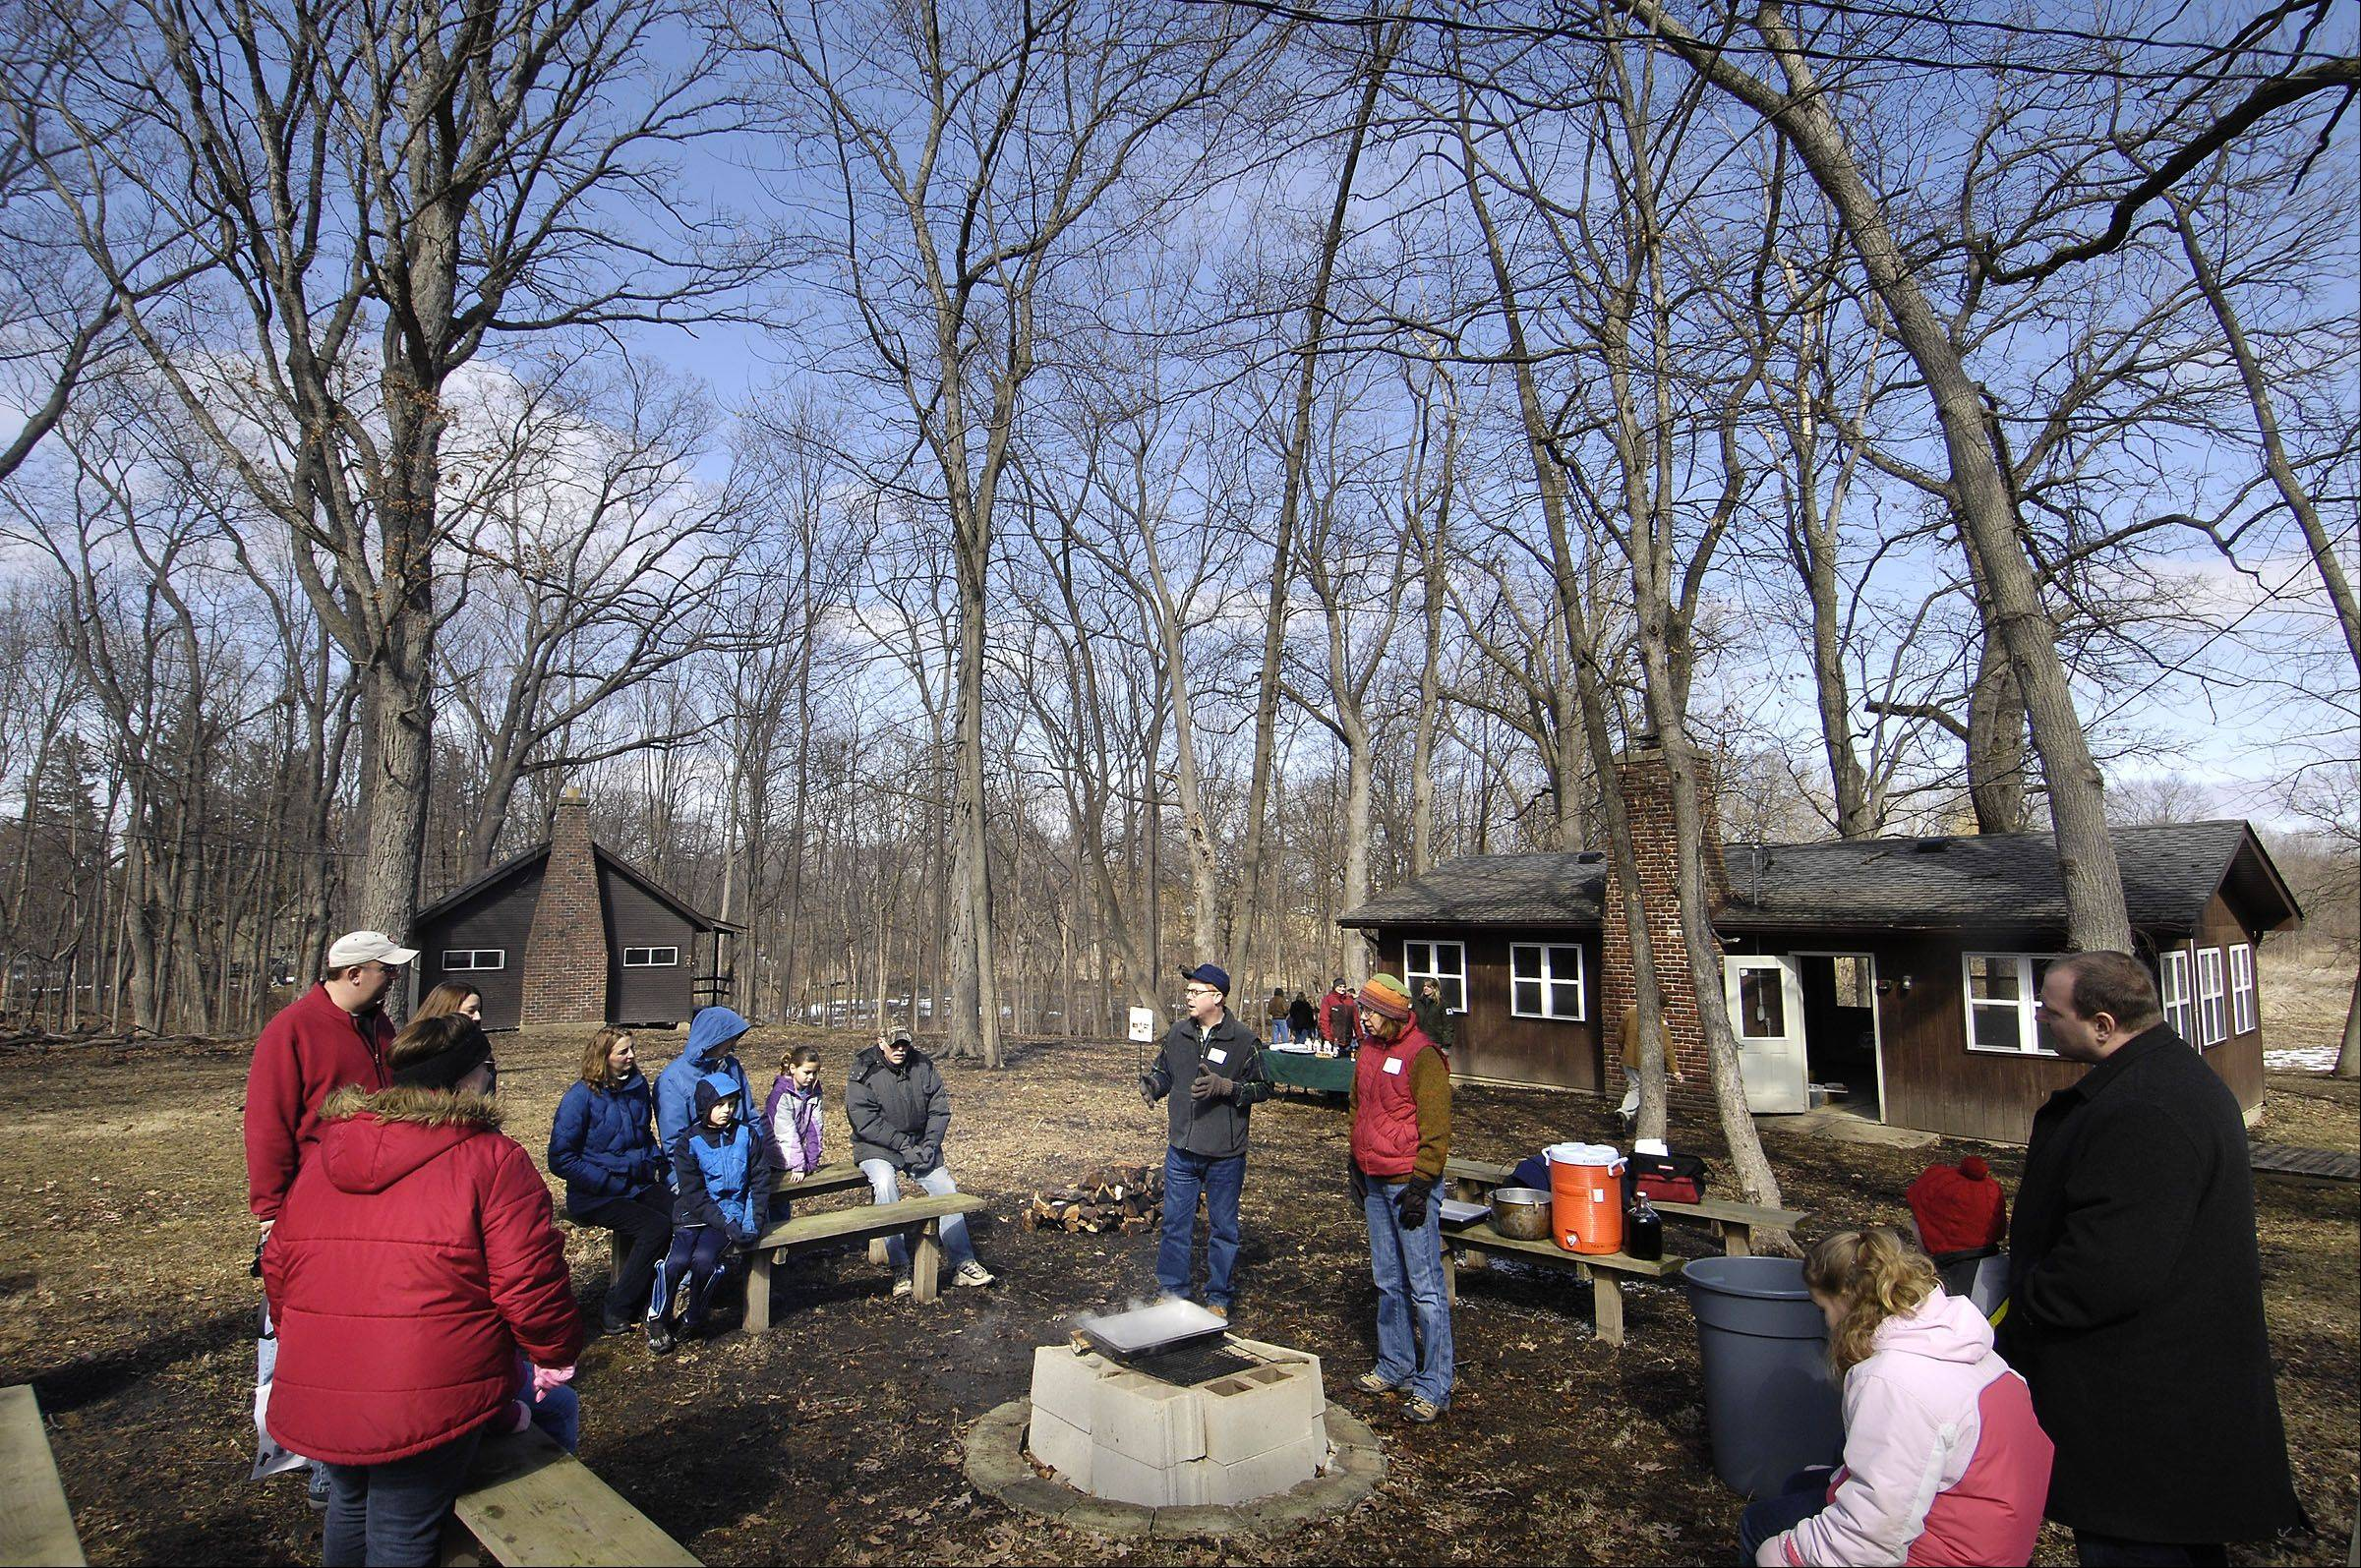 Ken King of St. Charles and Sue Everson of Elgin explain the process of simmering maple sap Sunday at Maple Sugaring Days event at Brewster Creek Forest Preserve in St. Charles. The annual education event was staffed by volunteers for the Forest Preserve District of Kane County.